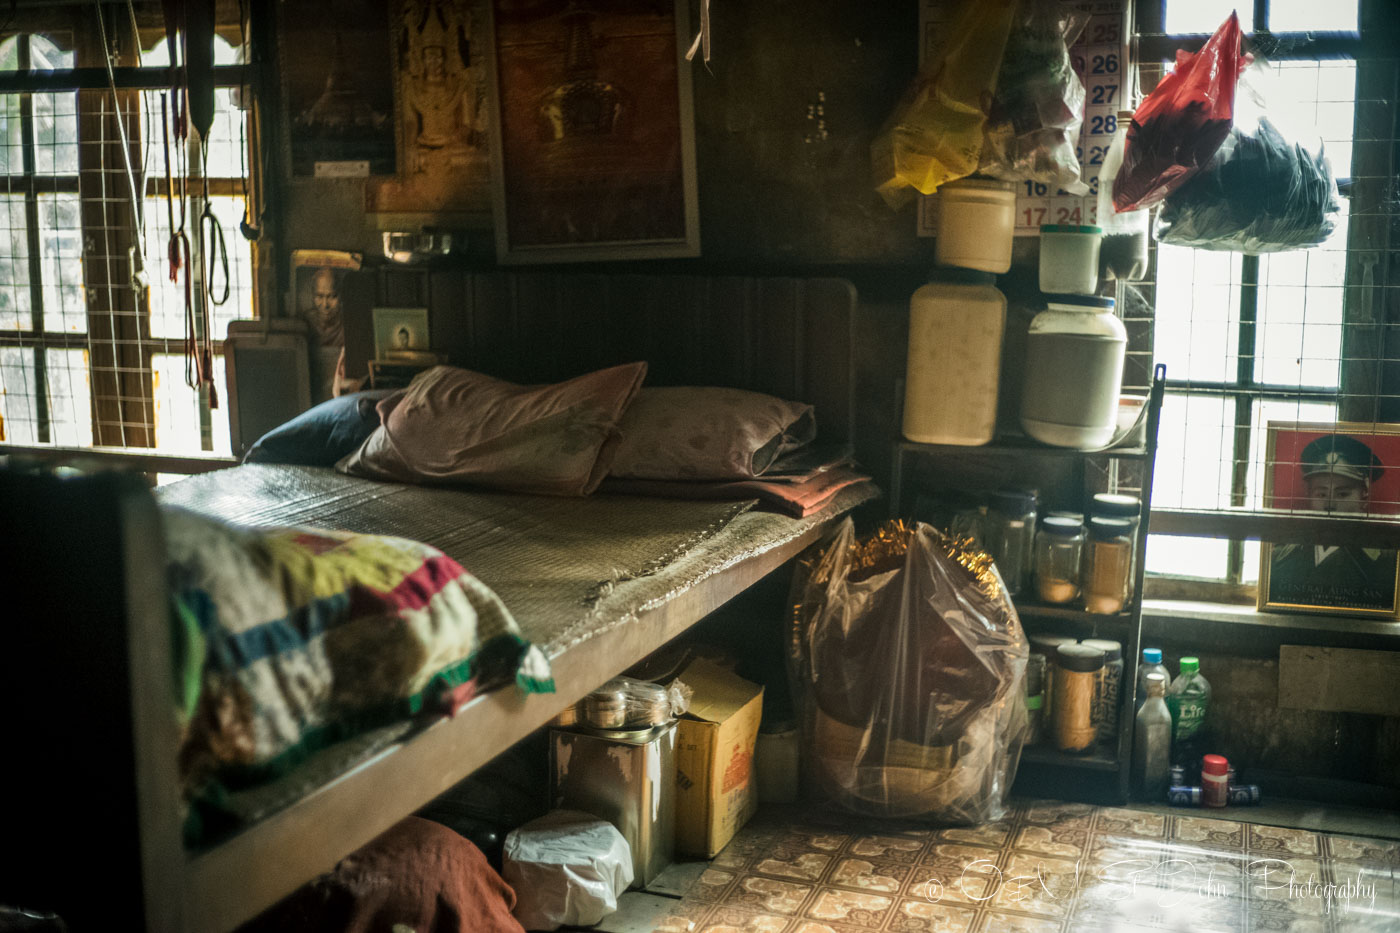 Typical Burmese monk living quarters of a monk in a monastery in Yangon. Myanmar